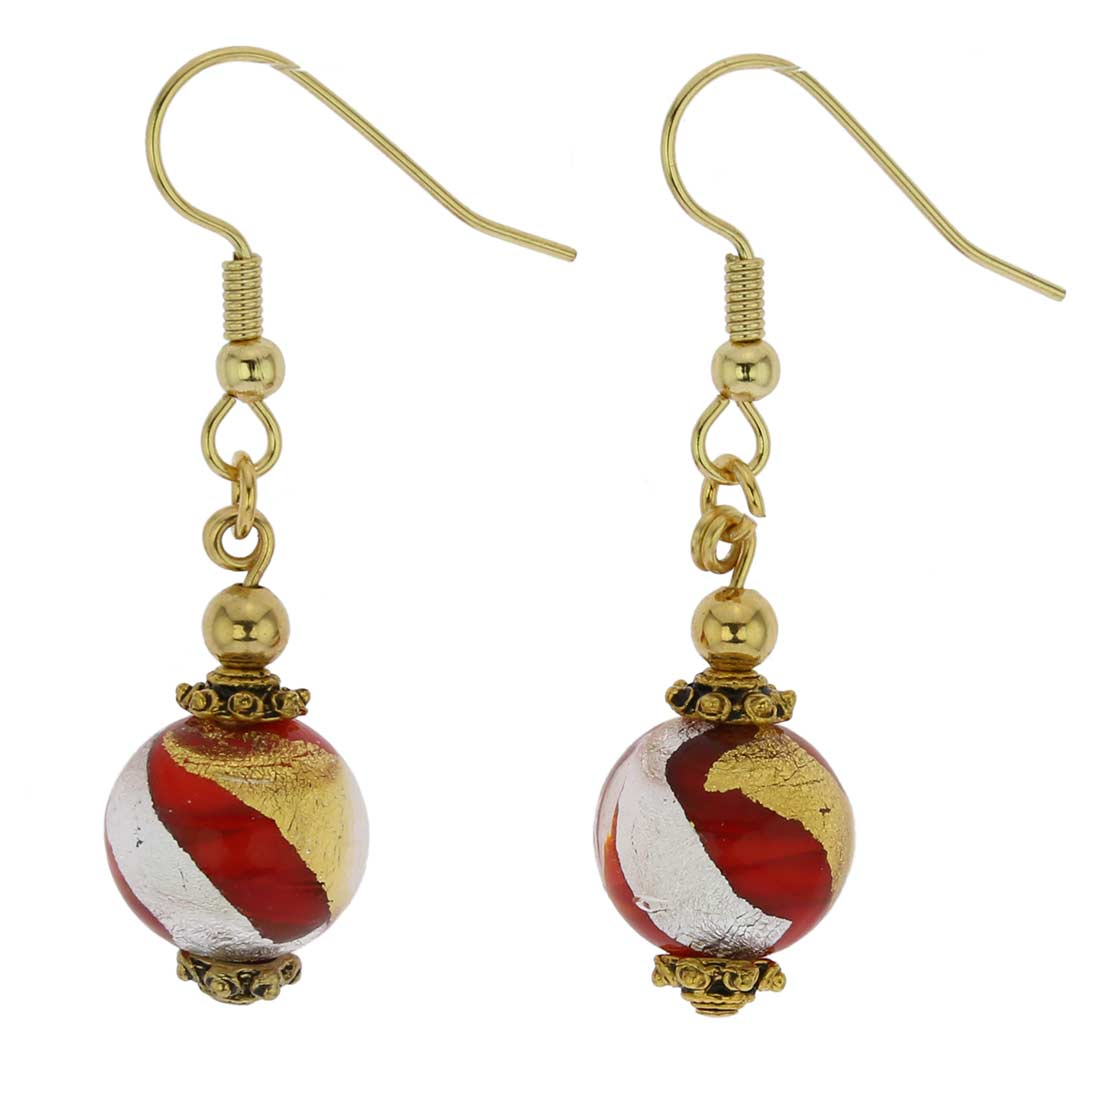 Antico Tesoro Balls Earrings - Red Gold and Silver